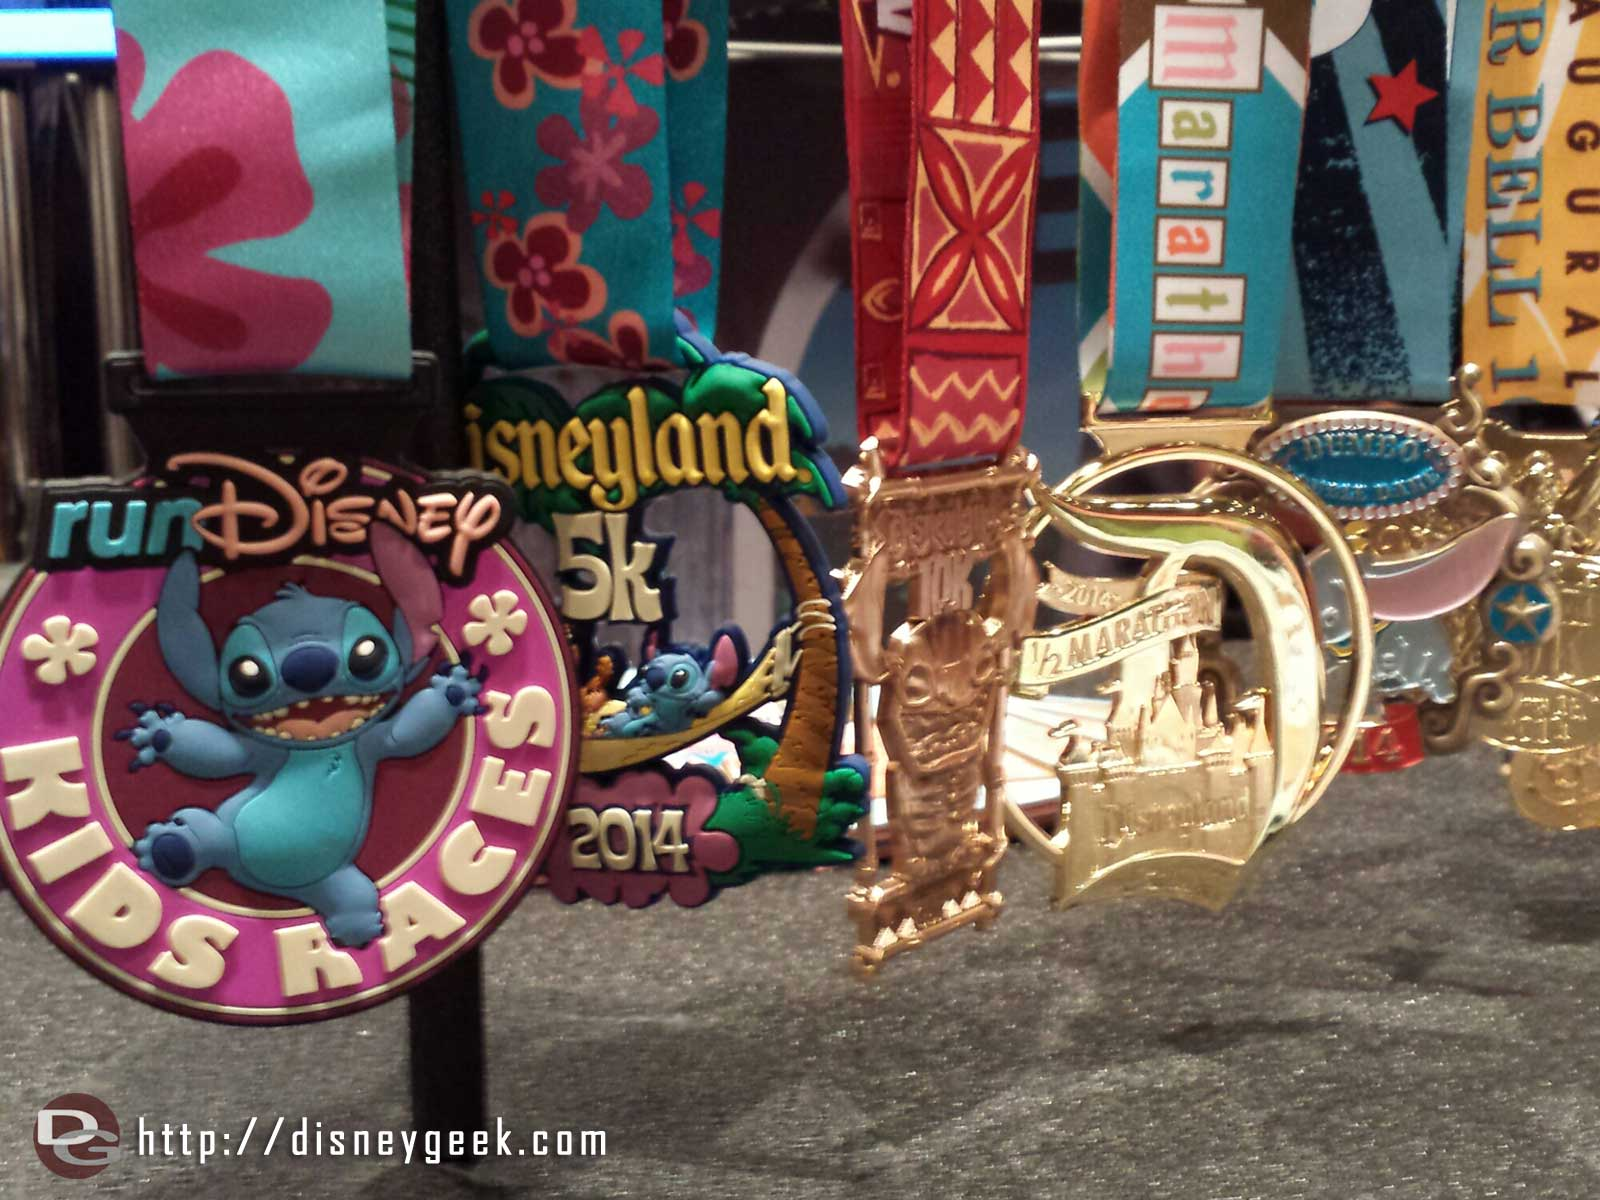 This weekends medals for the family, 5k, 10k, 1/2 marathon and double dare #runDisney